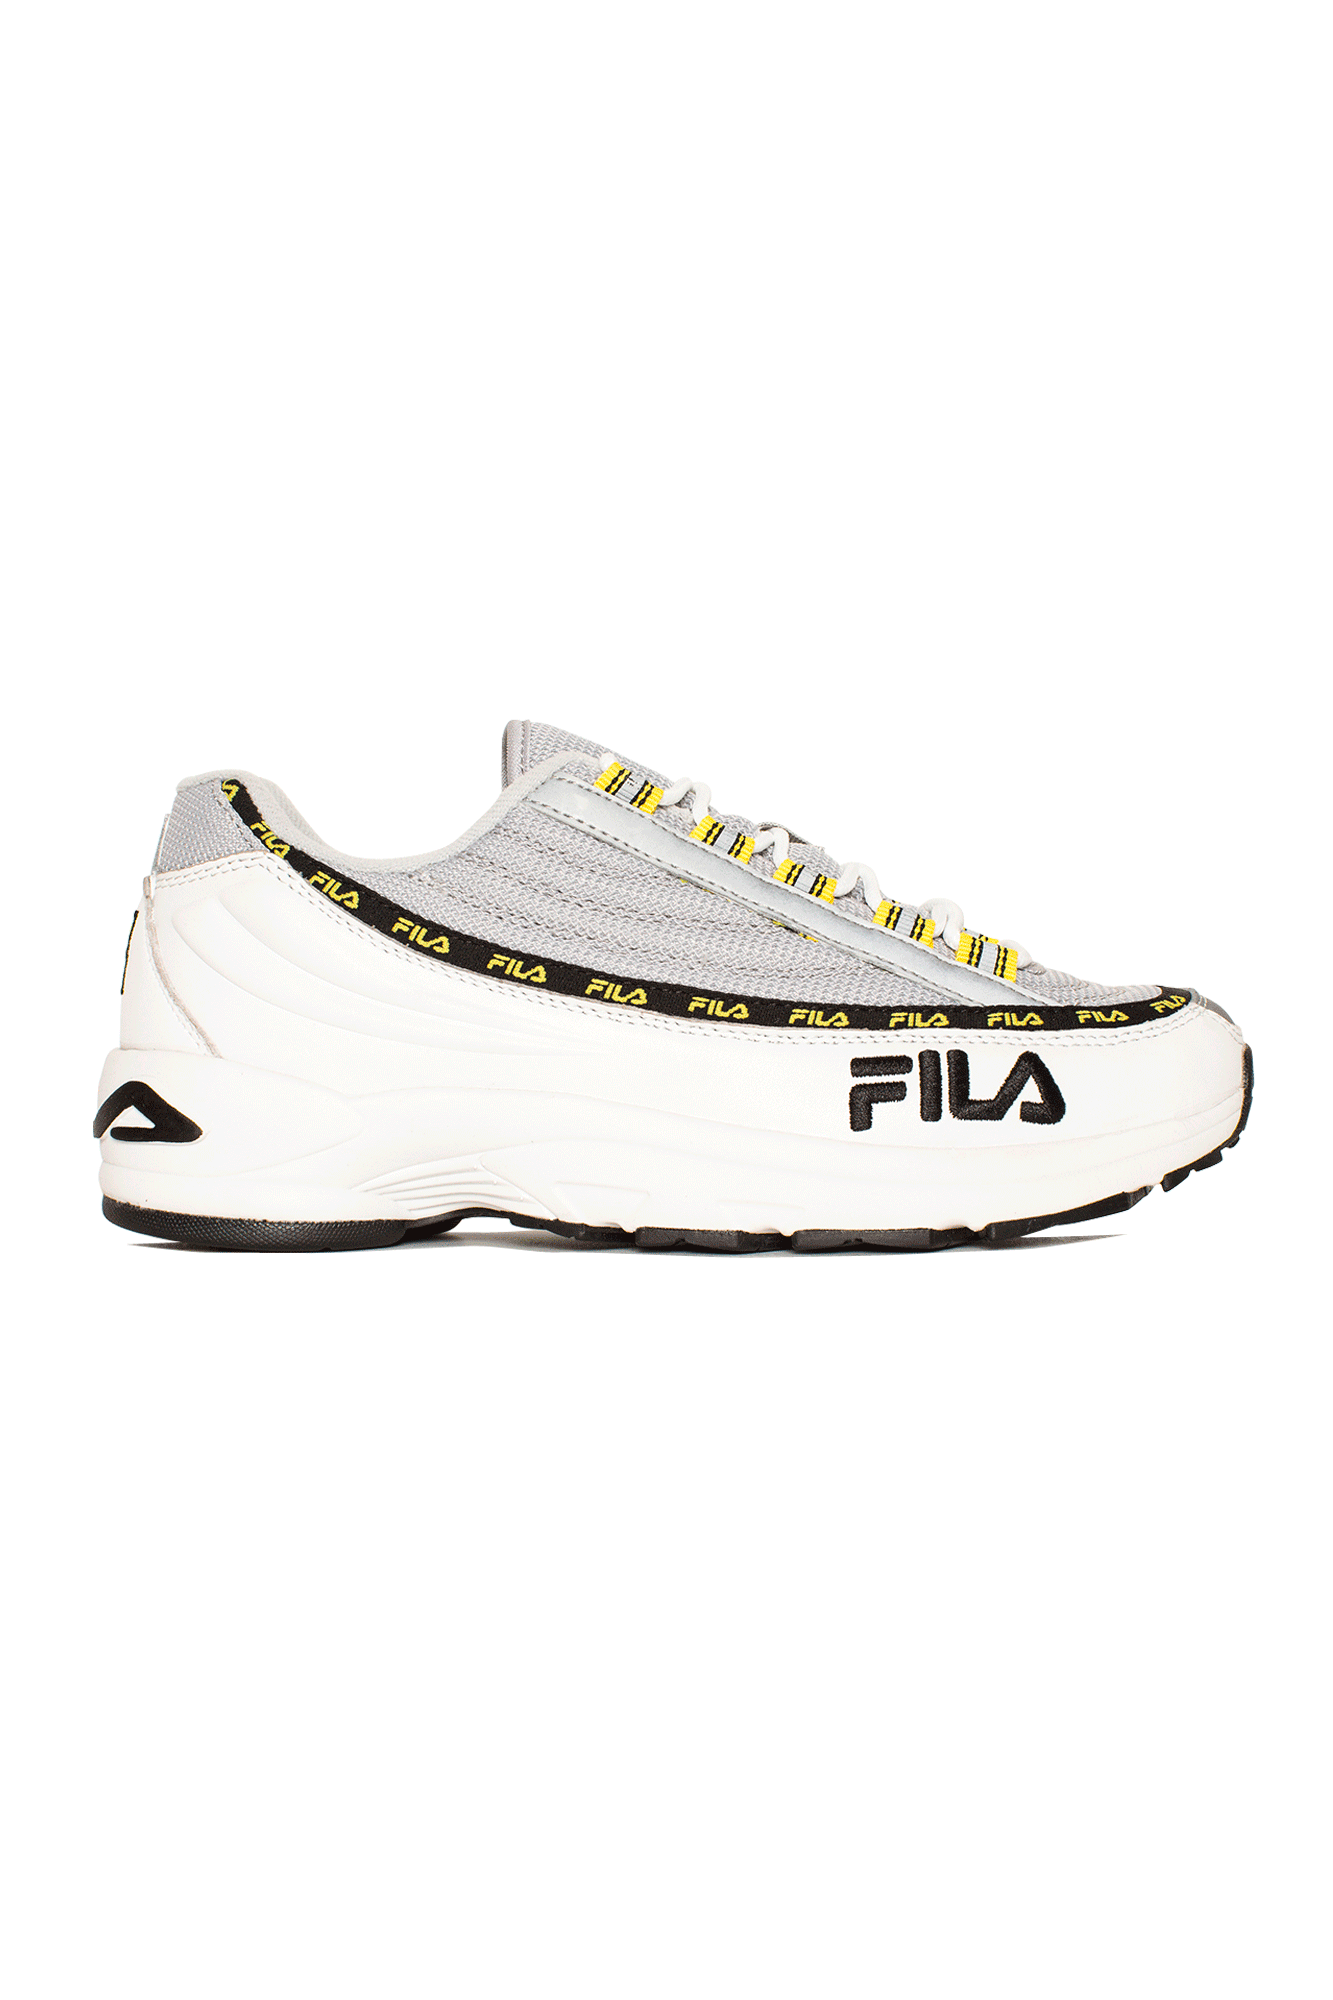 Fila Sneakers Dragster 97 White 1010570H1#000#C0006#7,5 - One Block Down